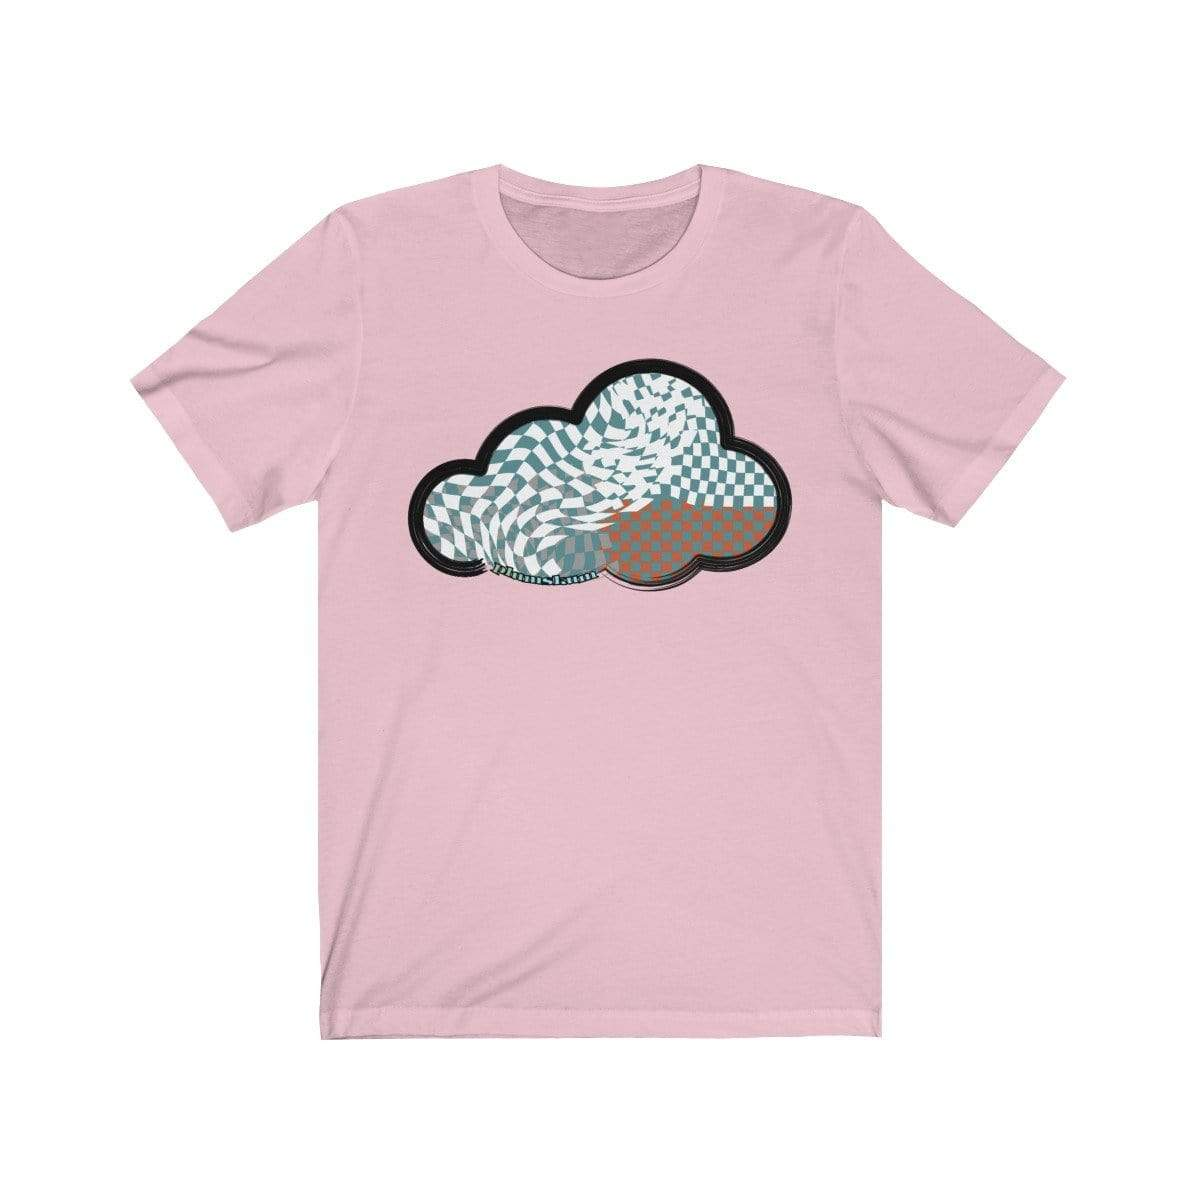 Printify T-Shirt Pink / M Checker Art Clouds T-Shirt